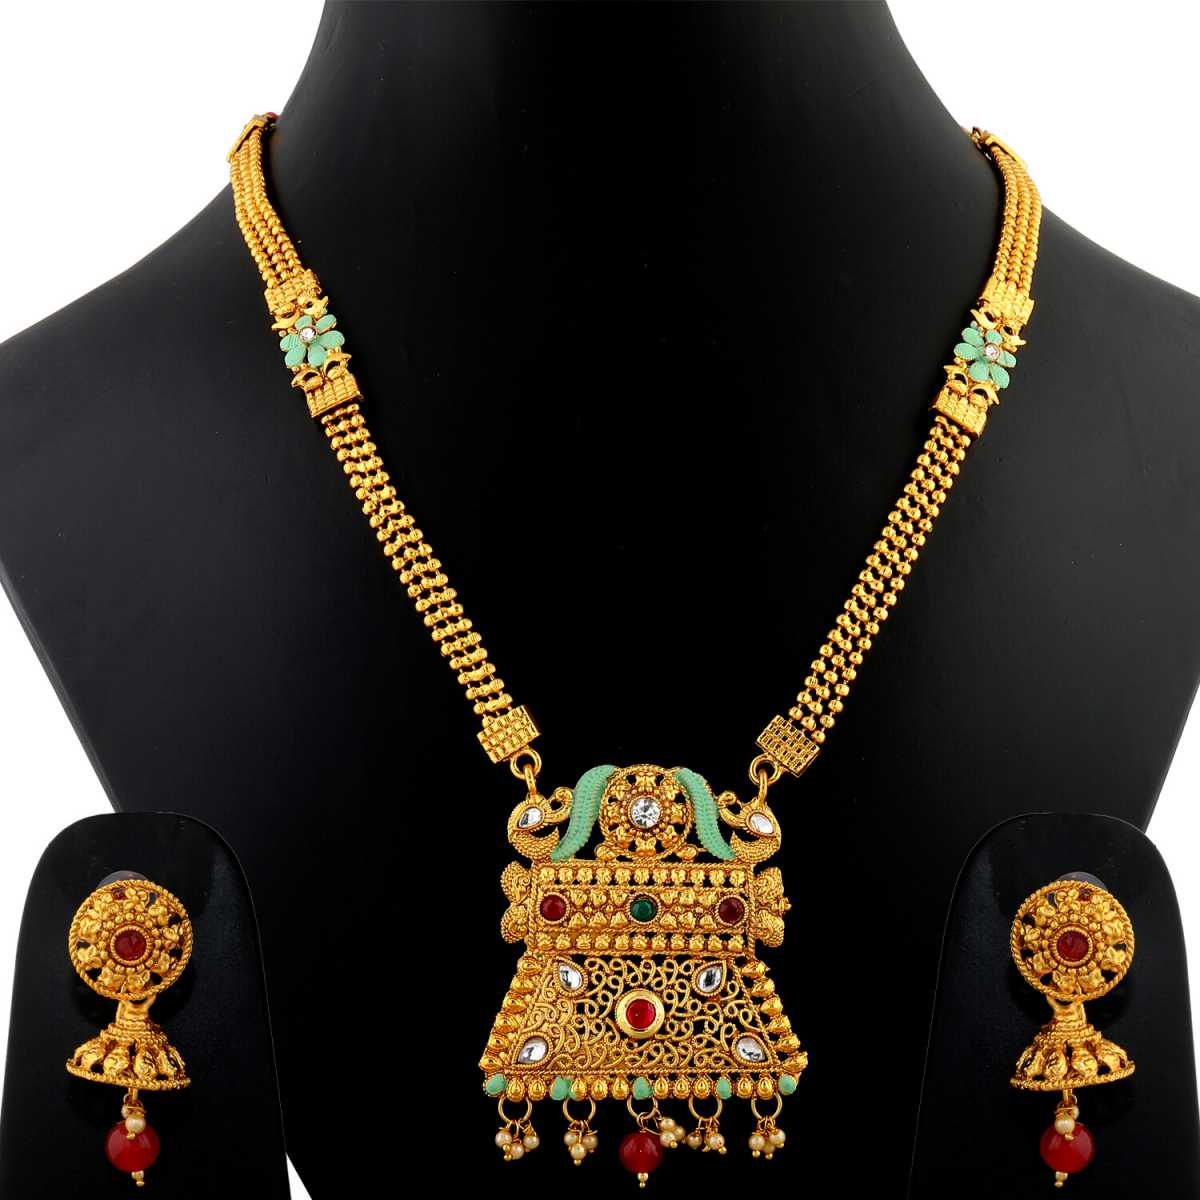 Silver Shine Exclusive Gold Plated Traditonal Three Line Chain Red And Green Stone Studded Antique Design Ethnic Long Necklace Set  Jewellery For Women And Girls